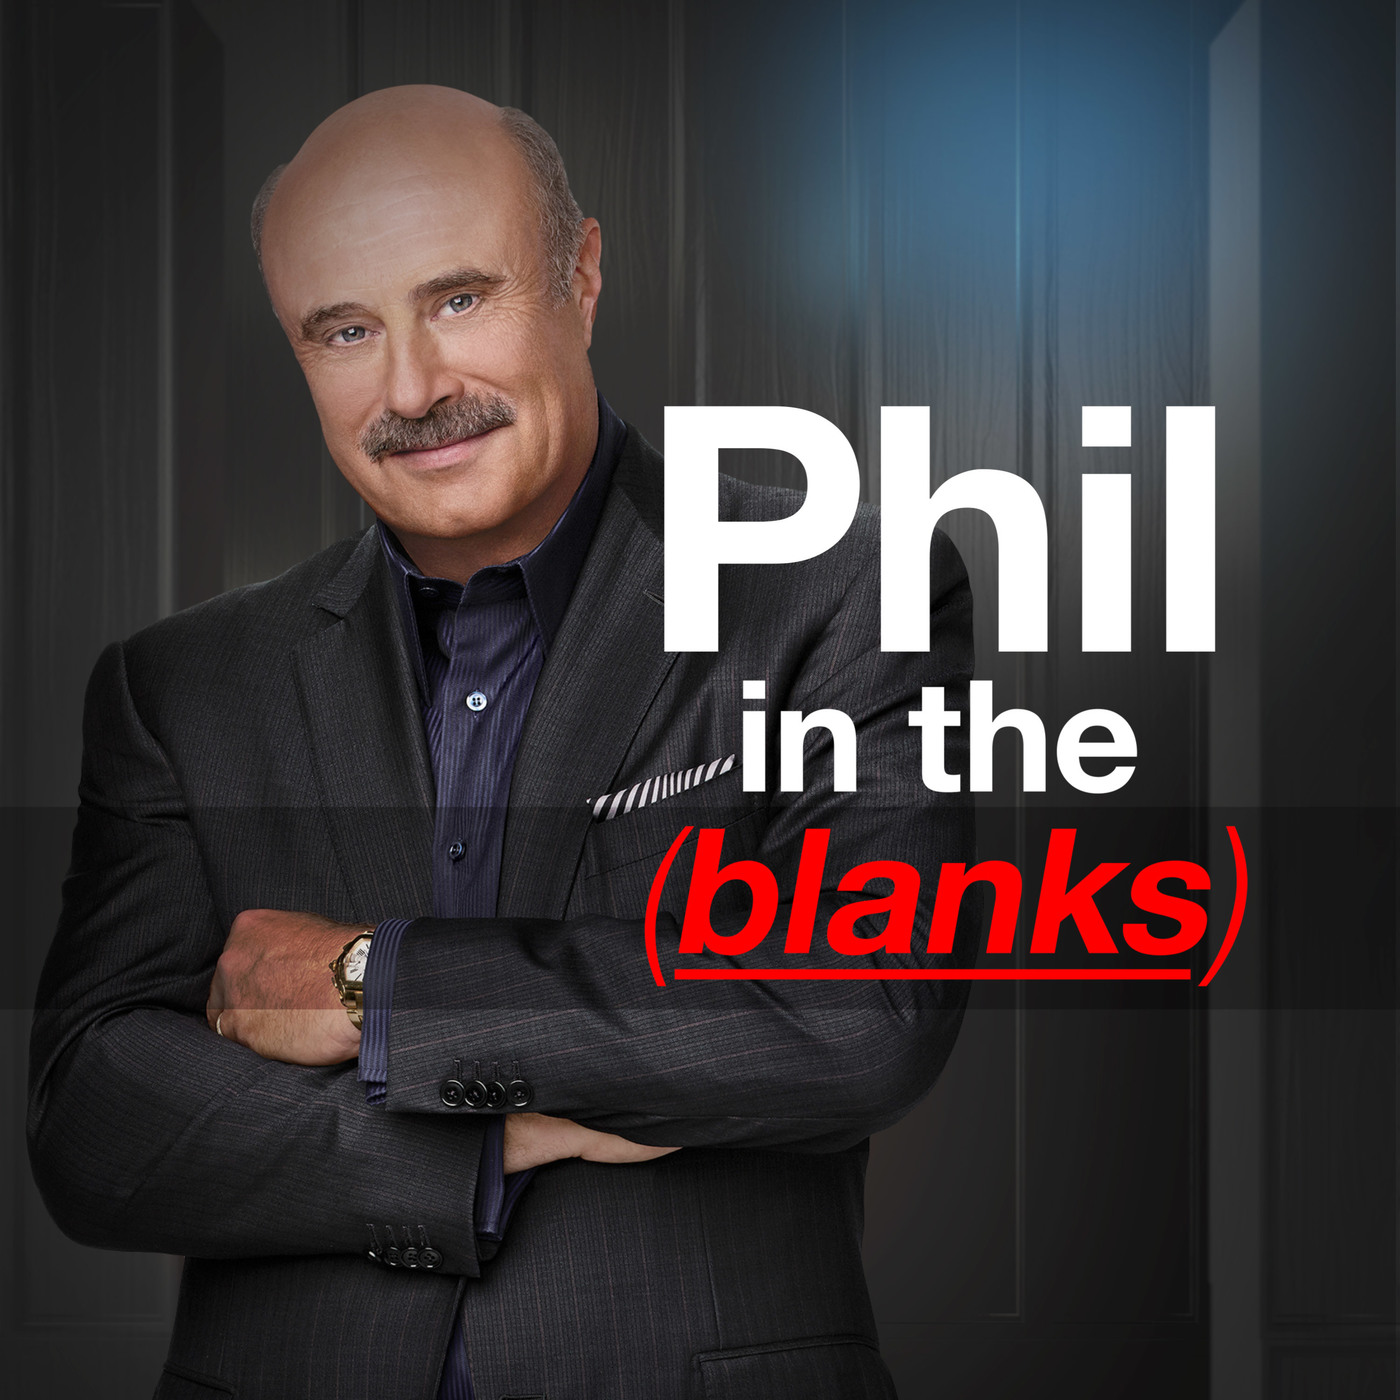 Dr. Phil Gets Real About Suicide, the Opioid Crisis and Cyber Bullying